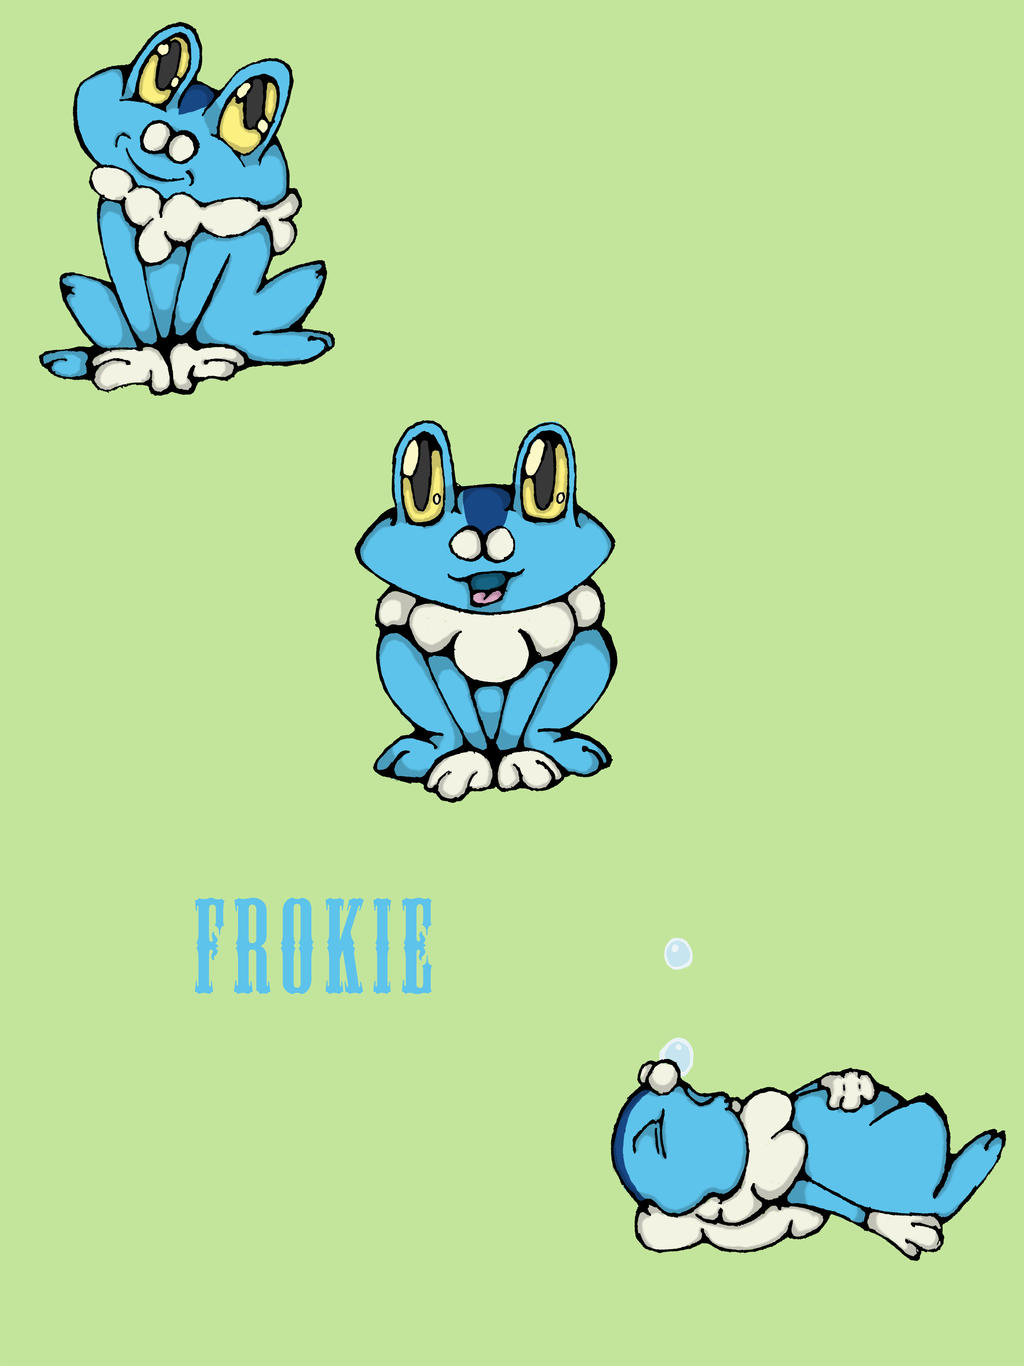 Frokie by Jazwind